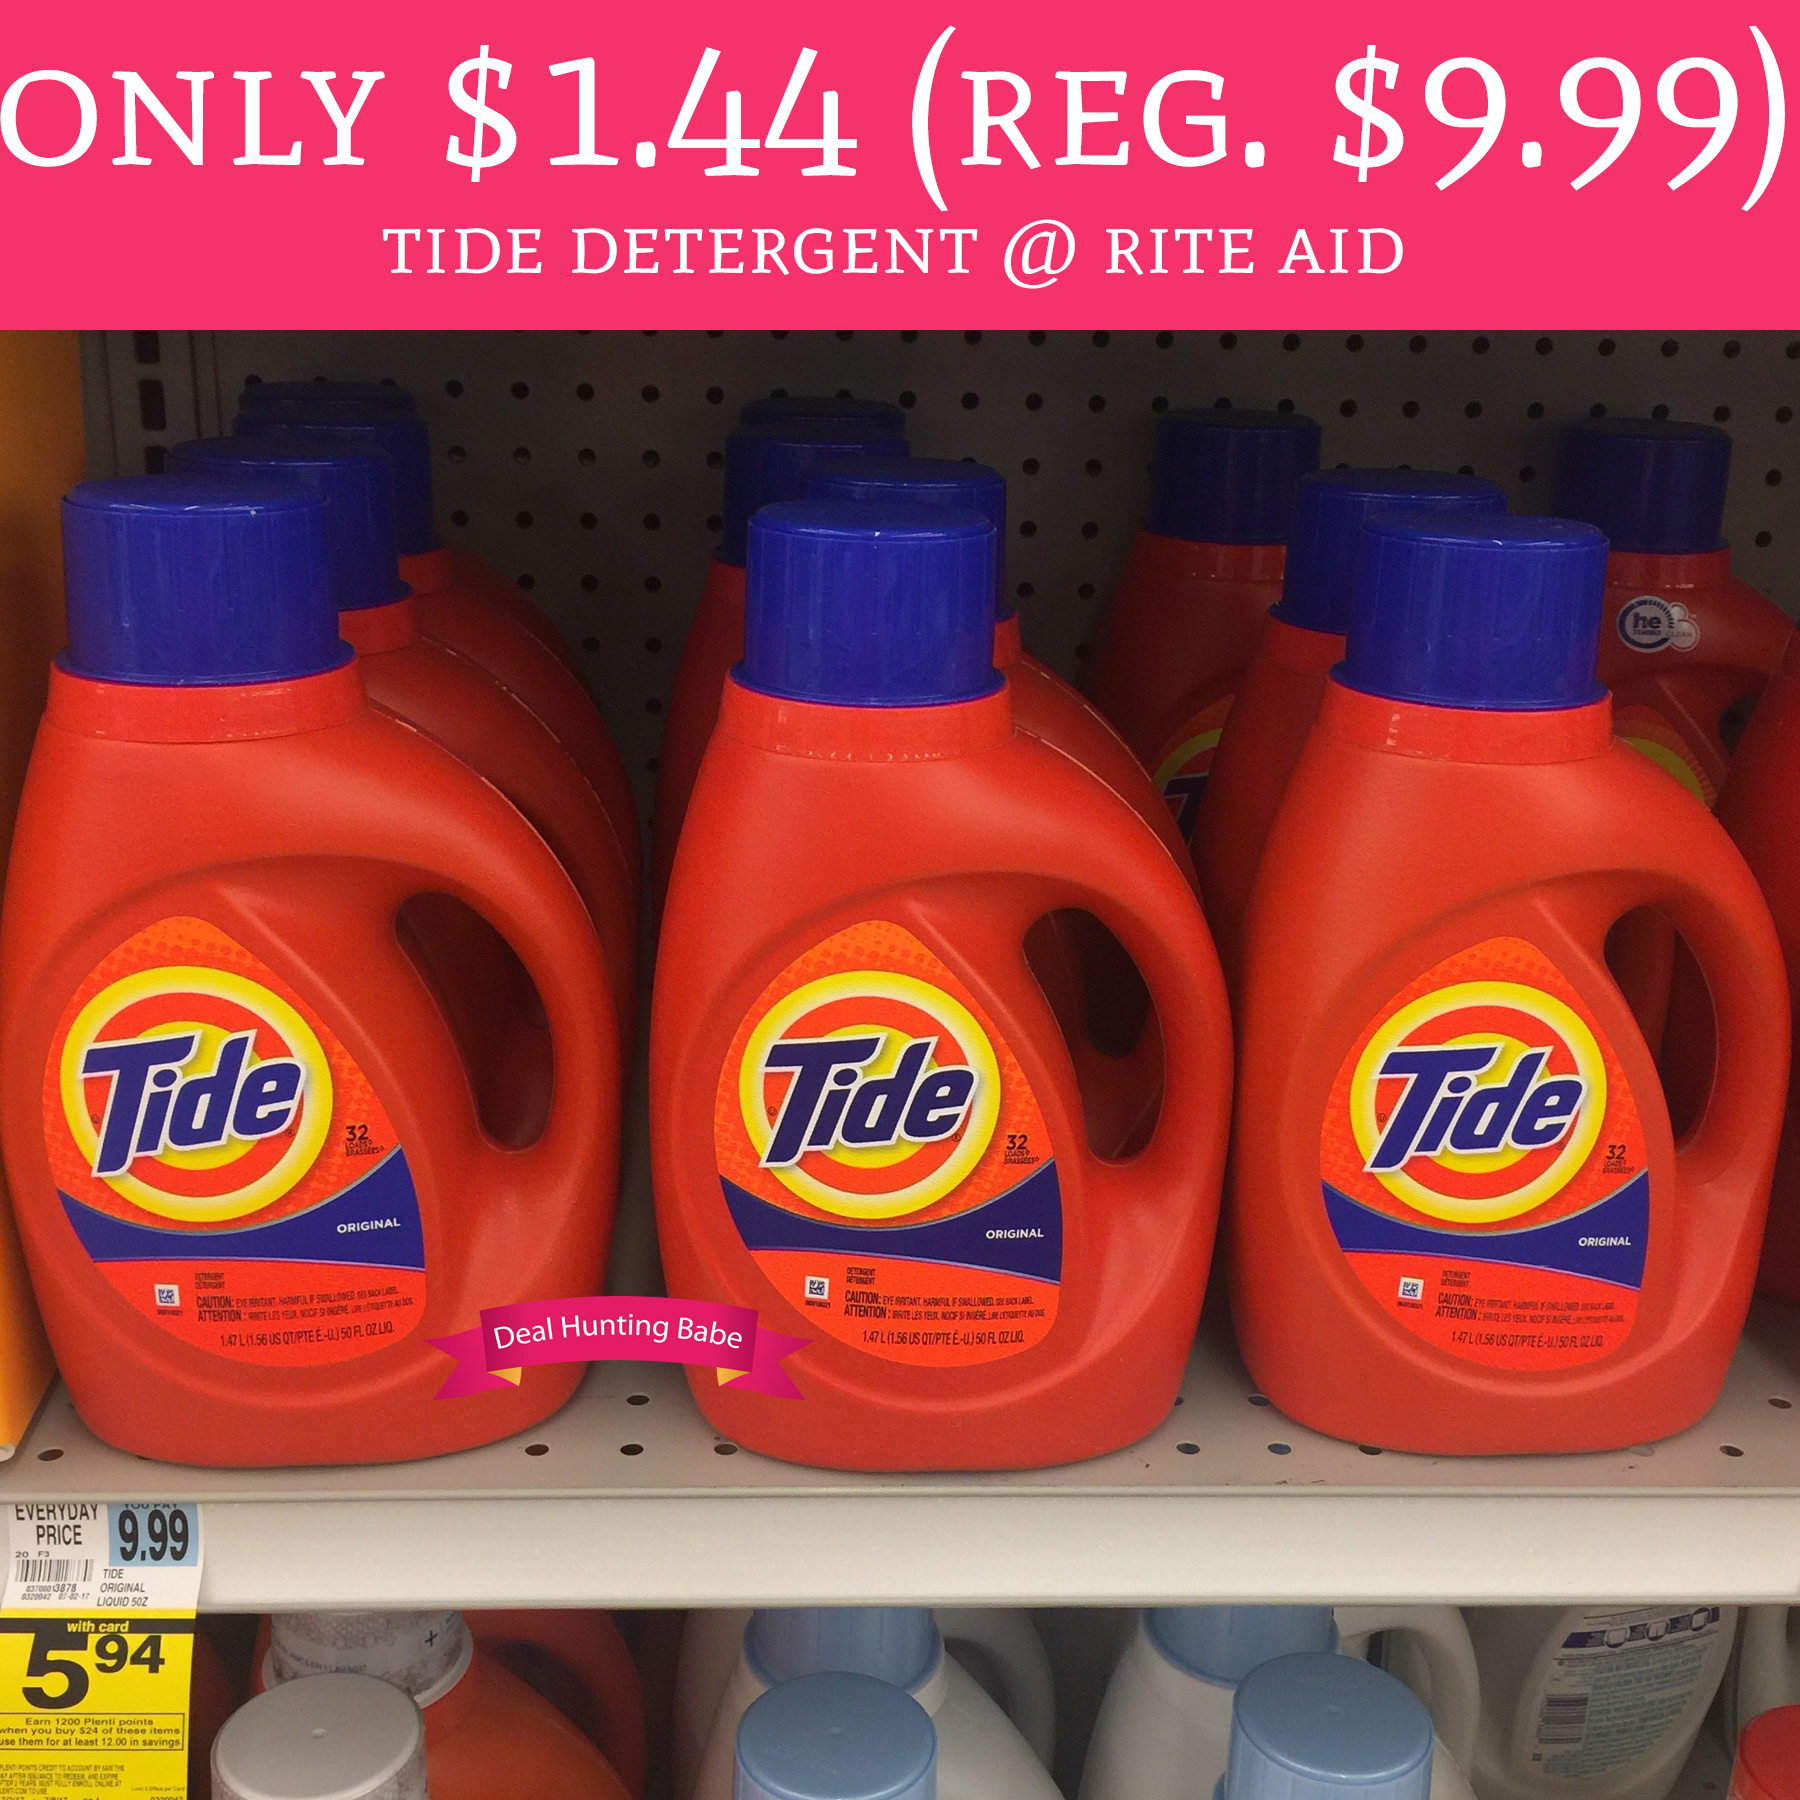 Rite Aid Stock Quote: HOT! Only $1.44 (Regular $9.99) Tide Detergent @ Rite Aid